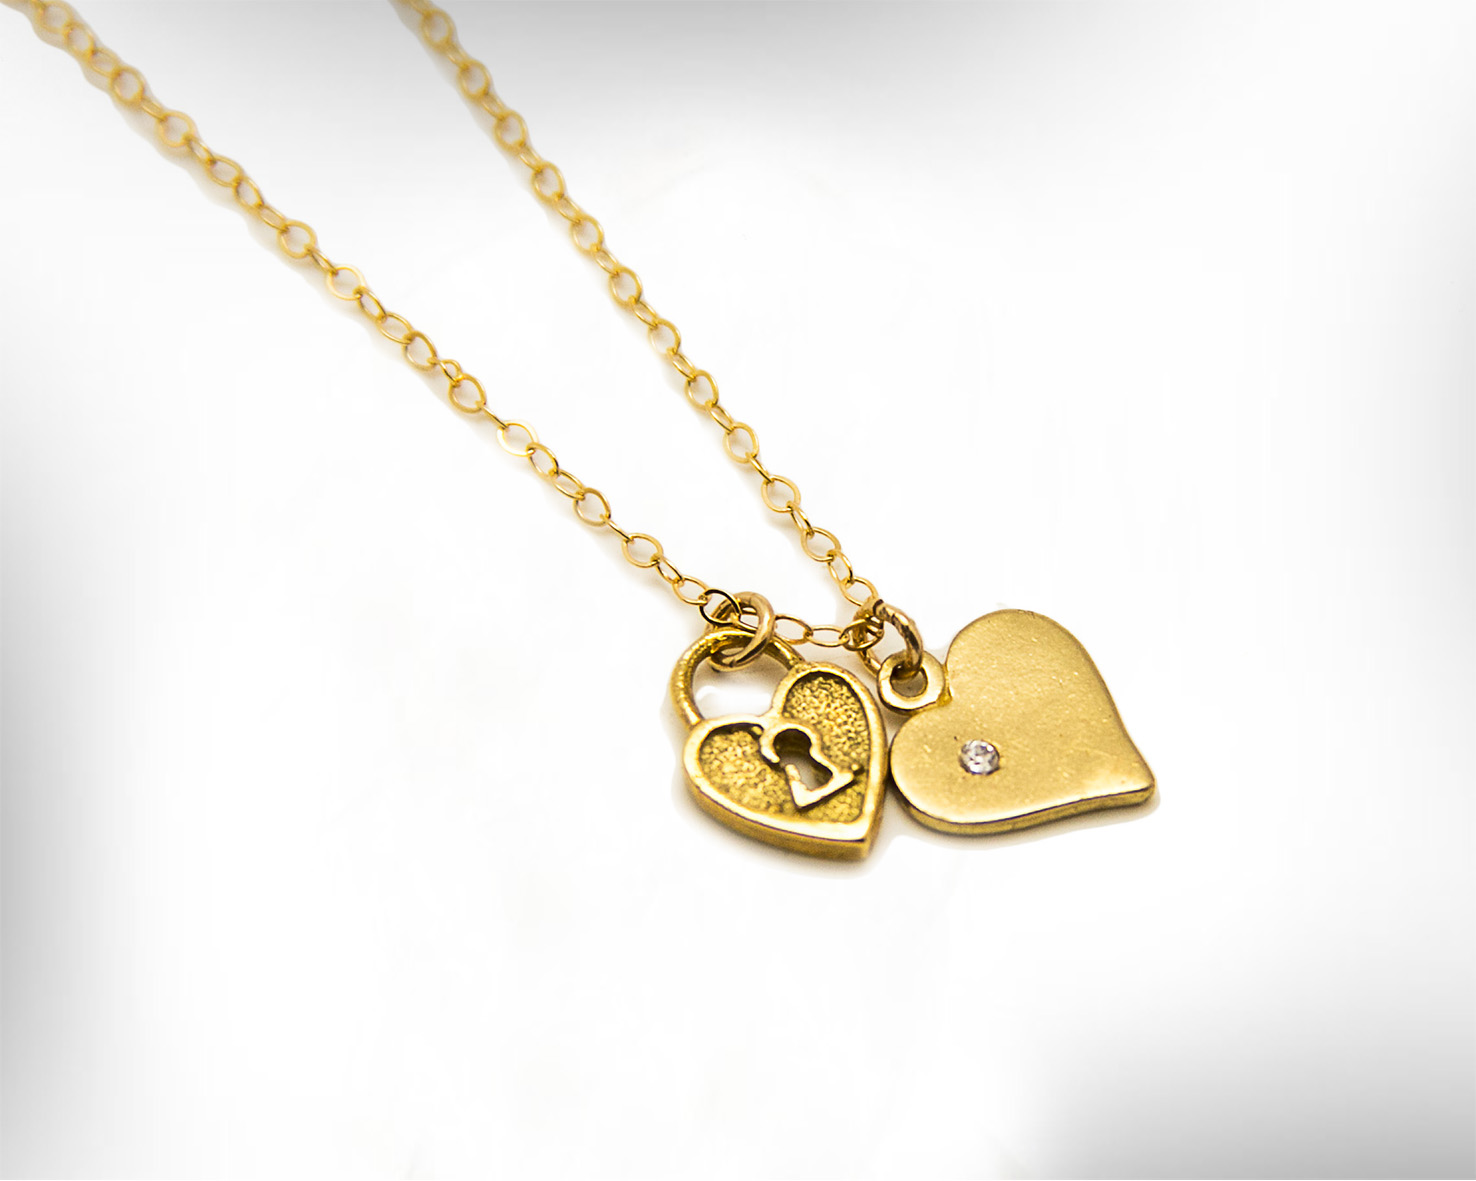 Golden Heart & Lock Pendants Necklace